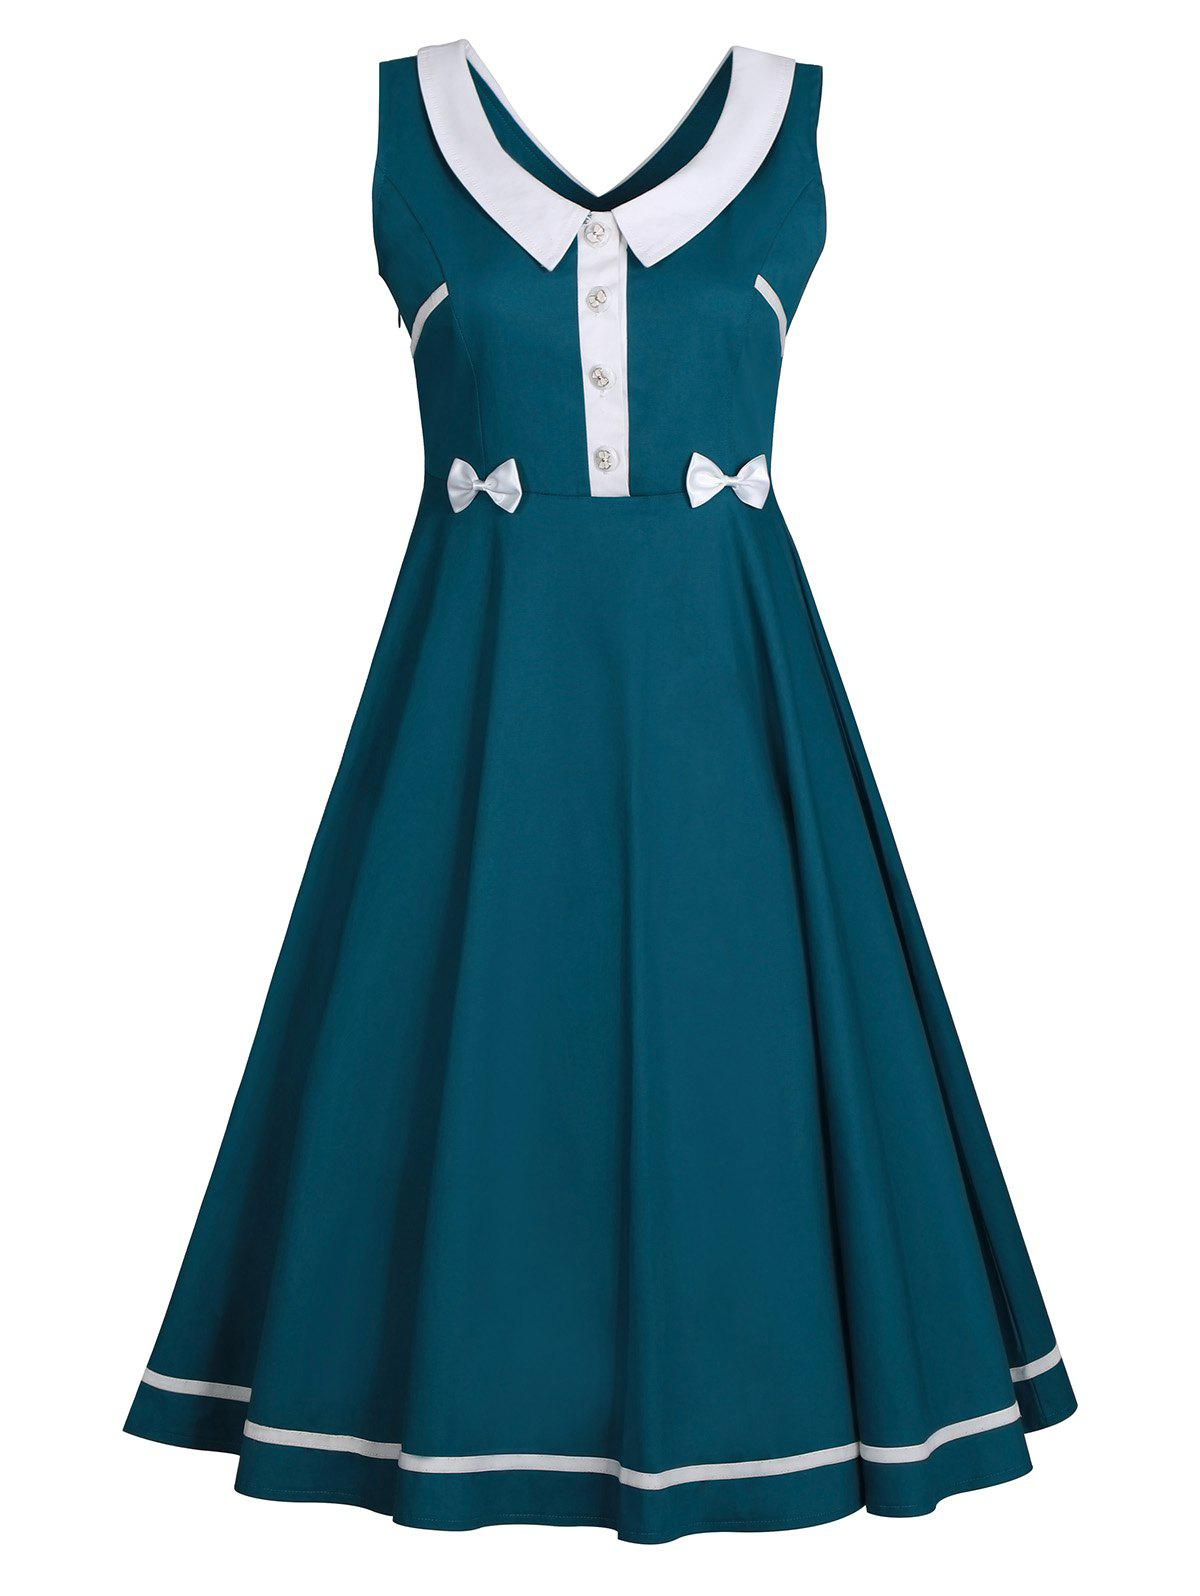 Sleeveless Plus Size  Flat Collar Vintage DressWOMEN<br><br>Size: 3XL; Color: BLACKISH GREEN; Style: Vintage; Material: Cotton Blend,Polyester; Silhouette: Ball Gown; Dresses Length: Mid-Calf; Neckline: Flat Collar; Sleeve Length: Sleeveless; Waist: High Waisted; Embellishment: Bowknot,Button,Vintage; Pattern Type: Others; With Belt: No; Season: Spring,Summer; Weight: 0.3900kg; Package Contents: 1 x Dress;